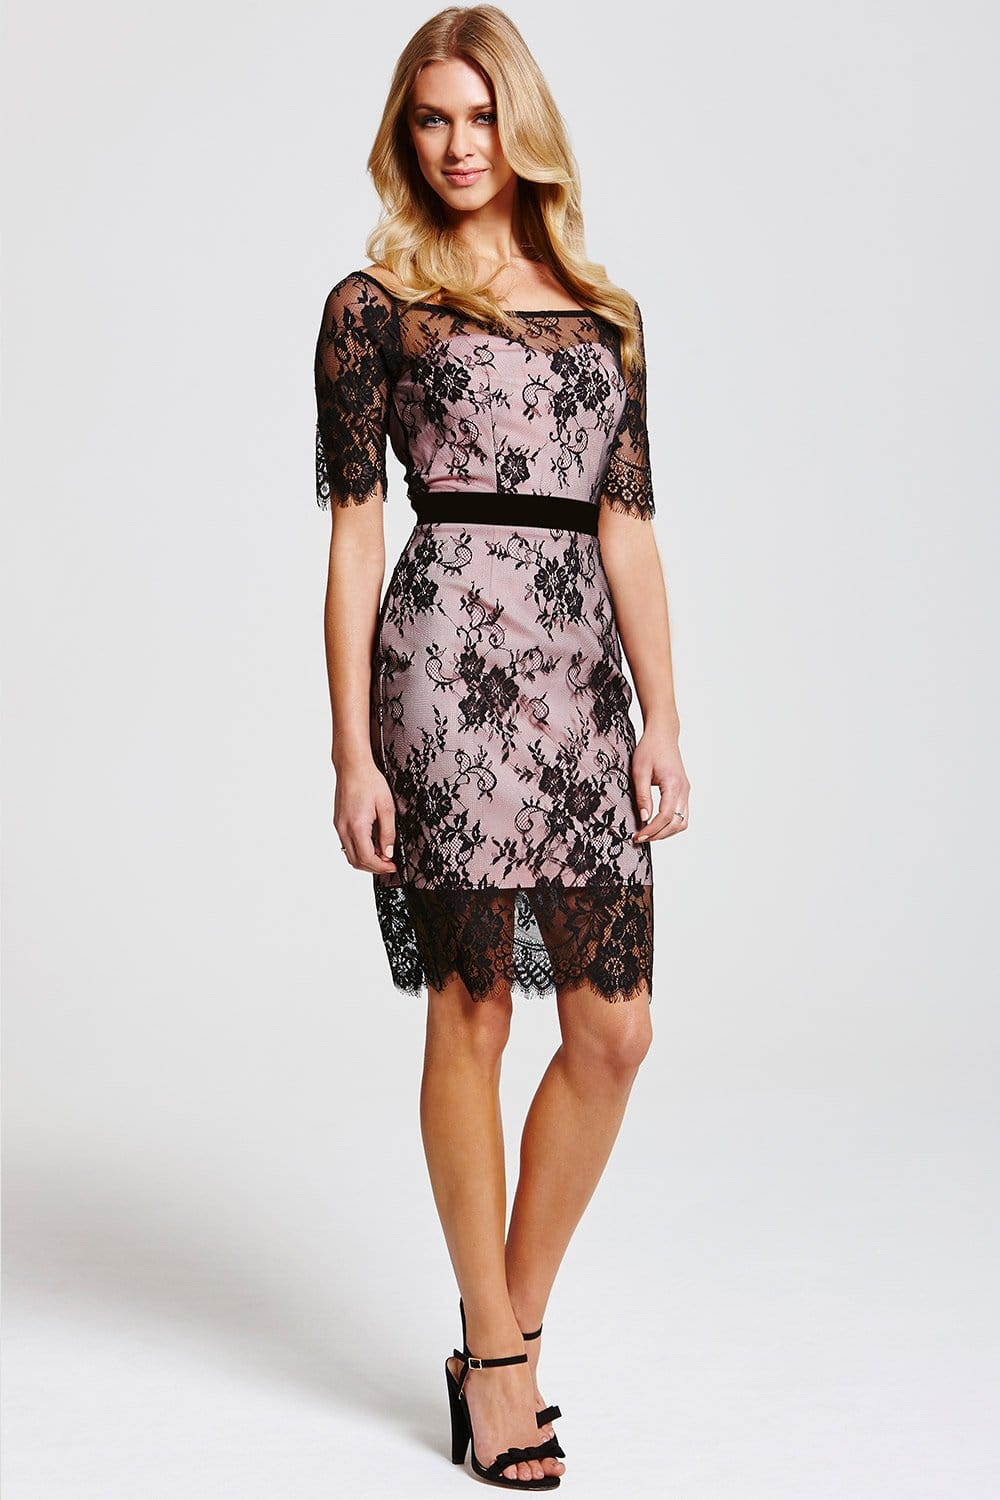 Pink with black lace dress